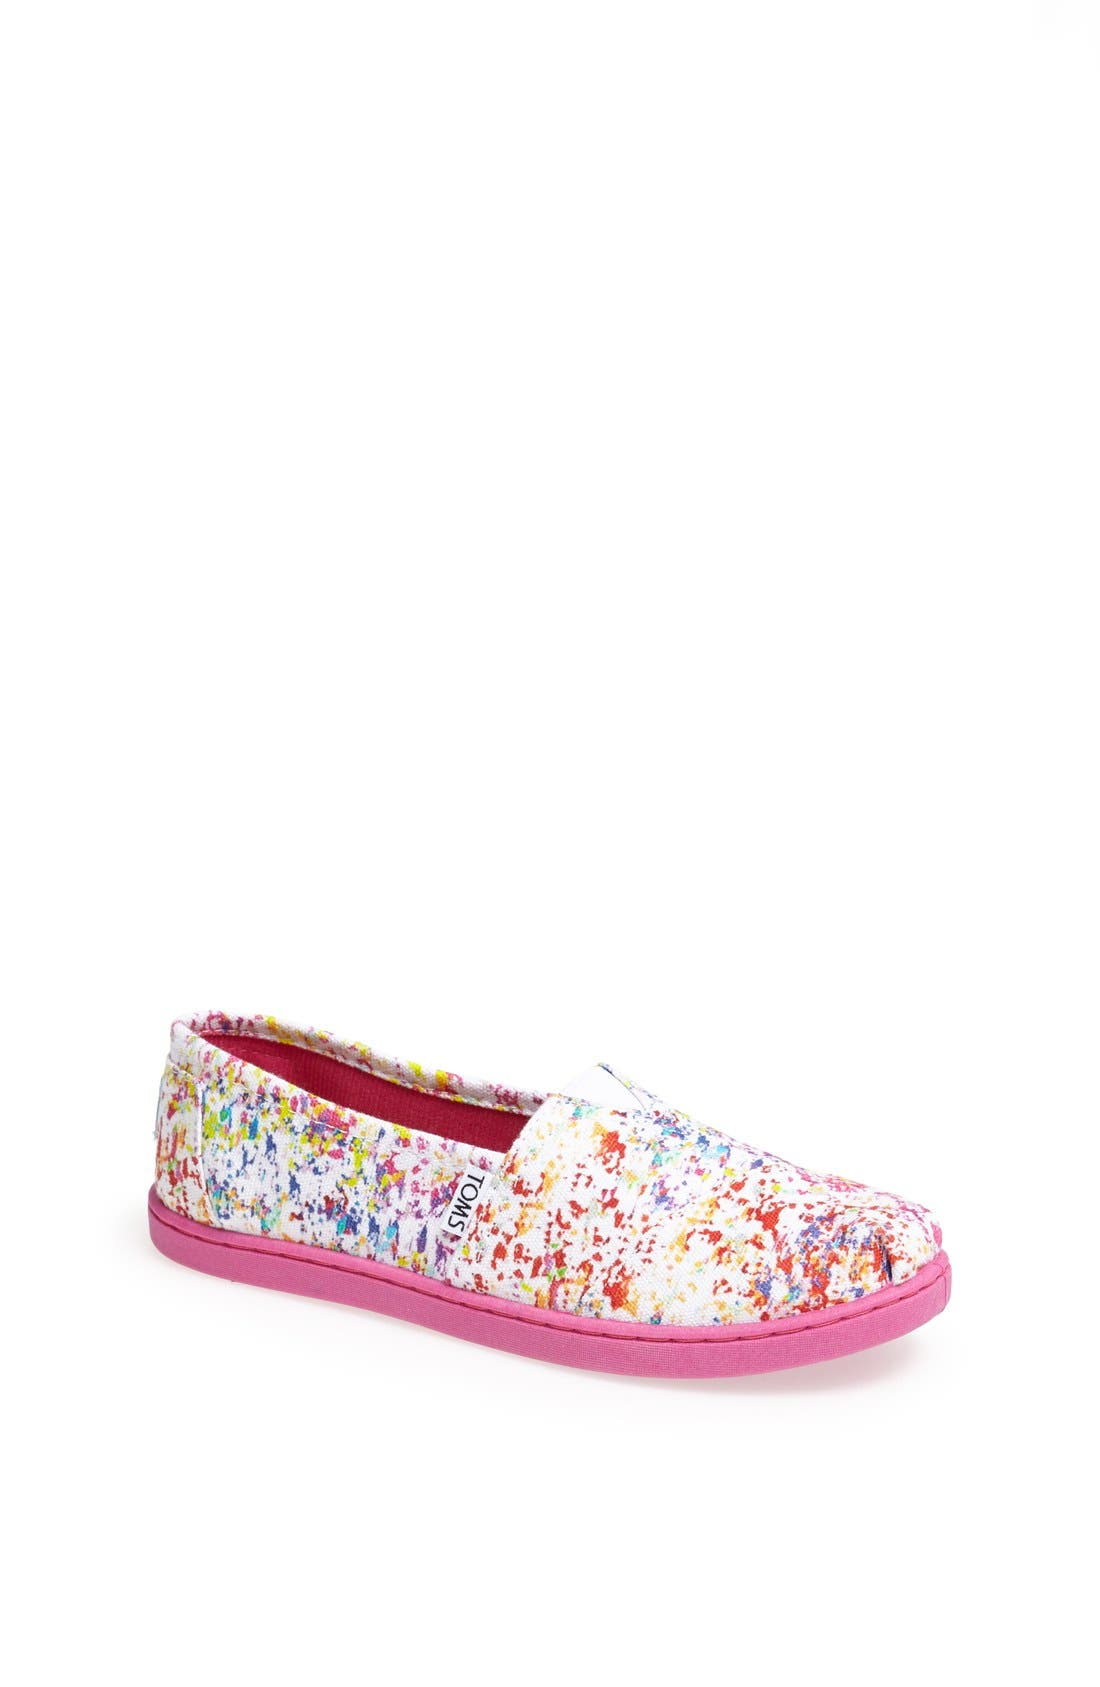 Main Image - TOMS CLASSIC YOUTH SLIP ON